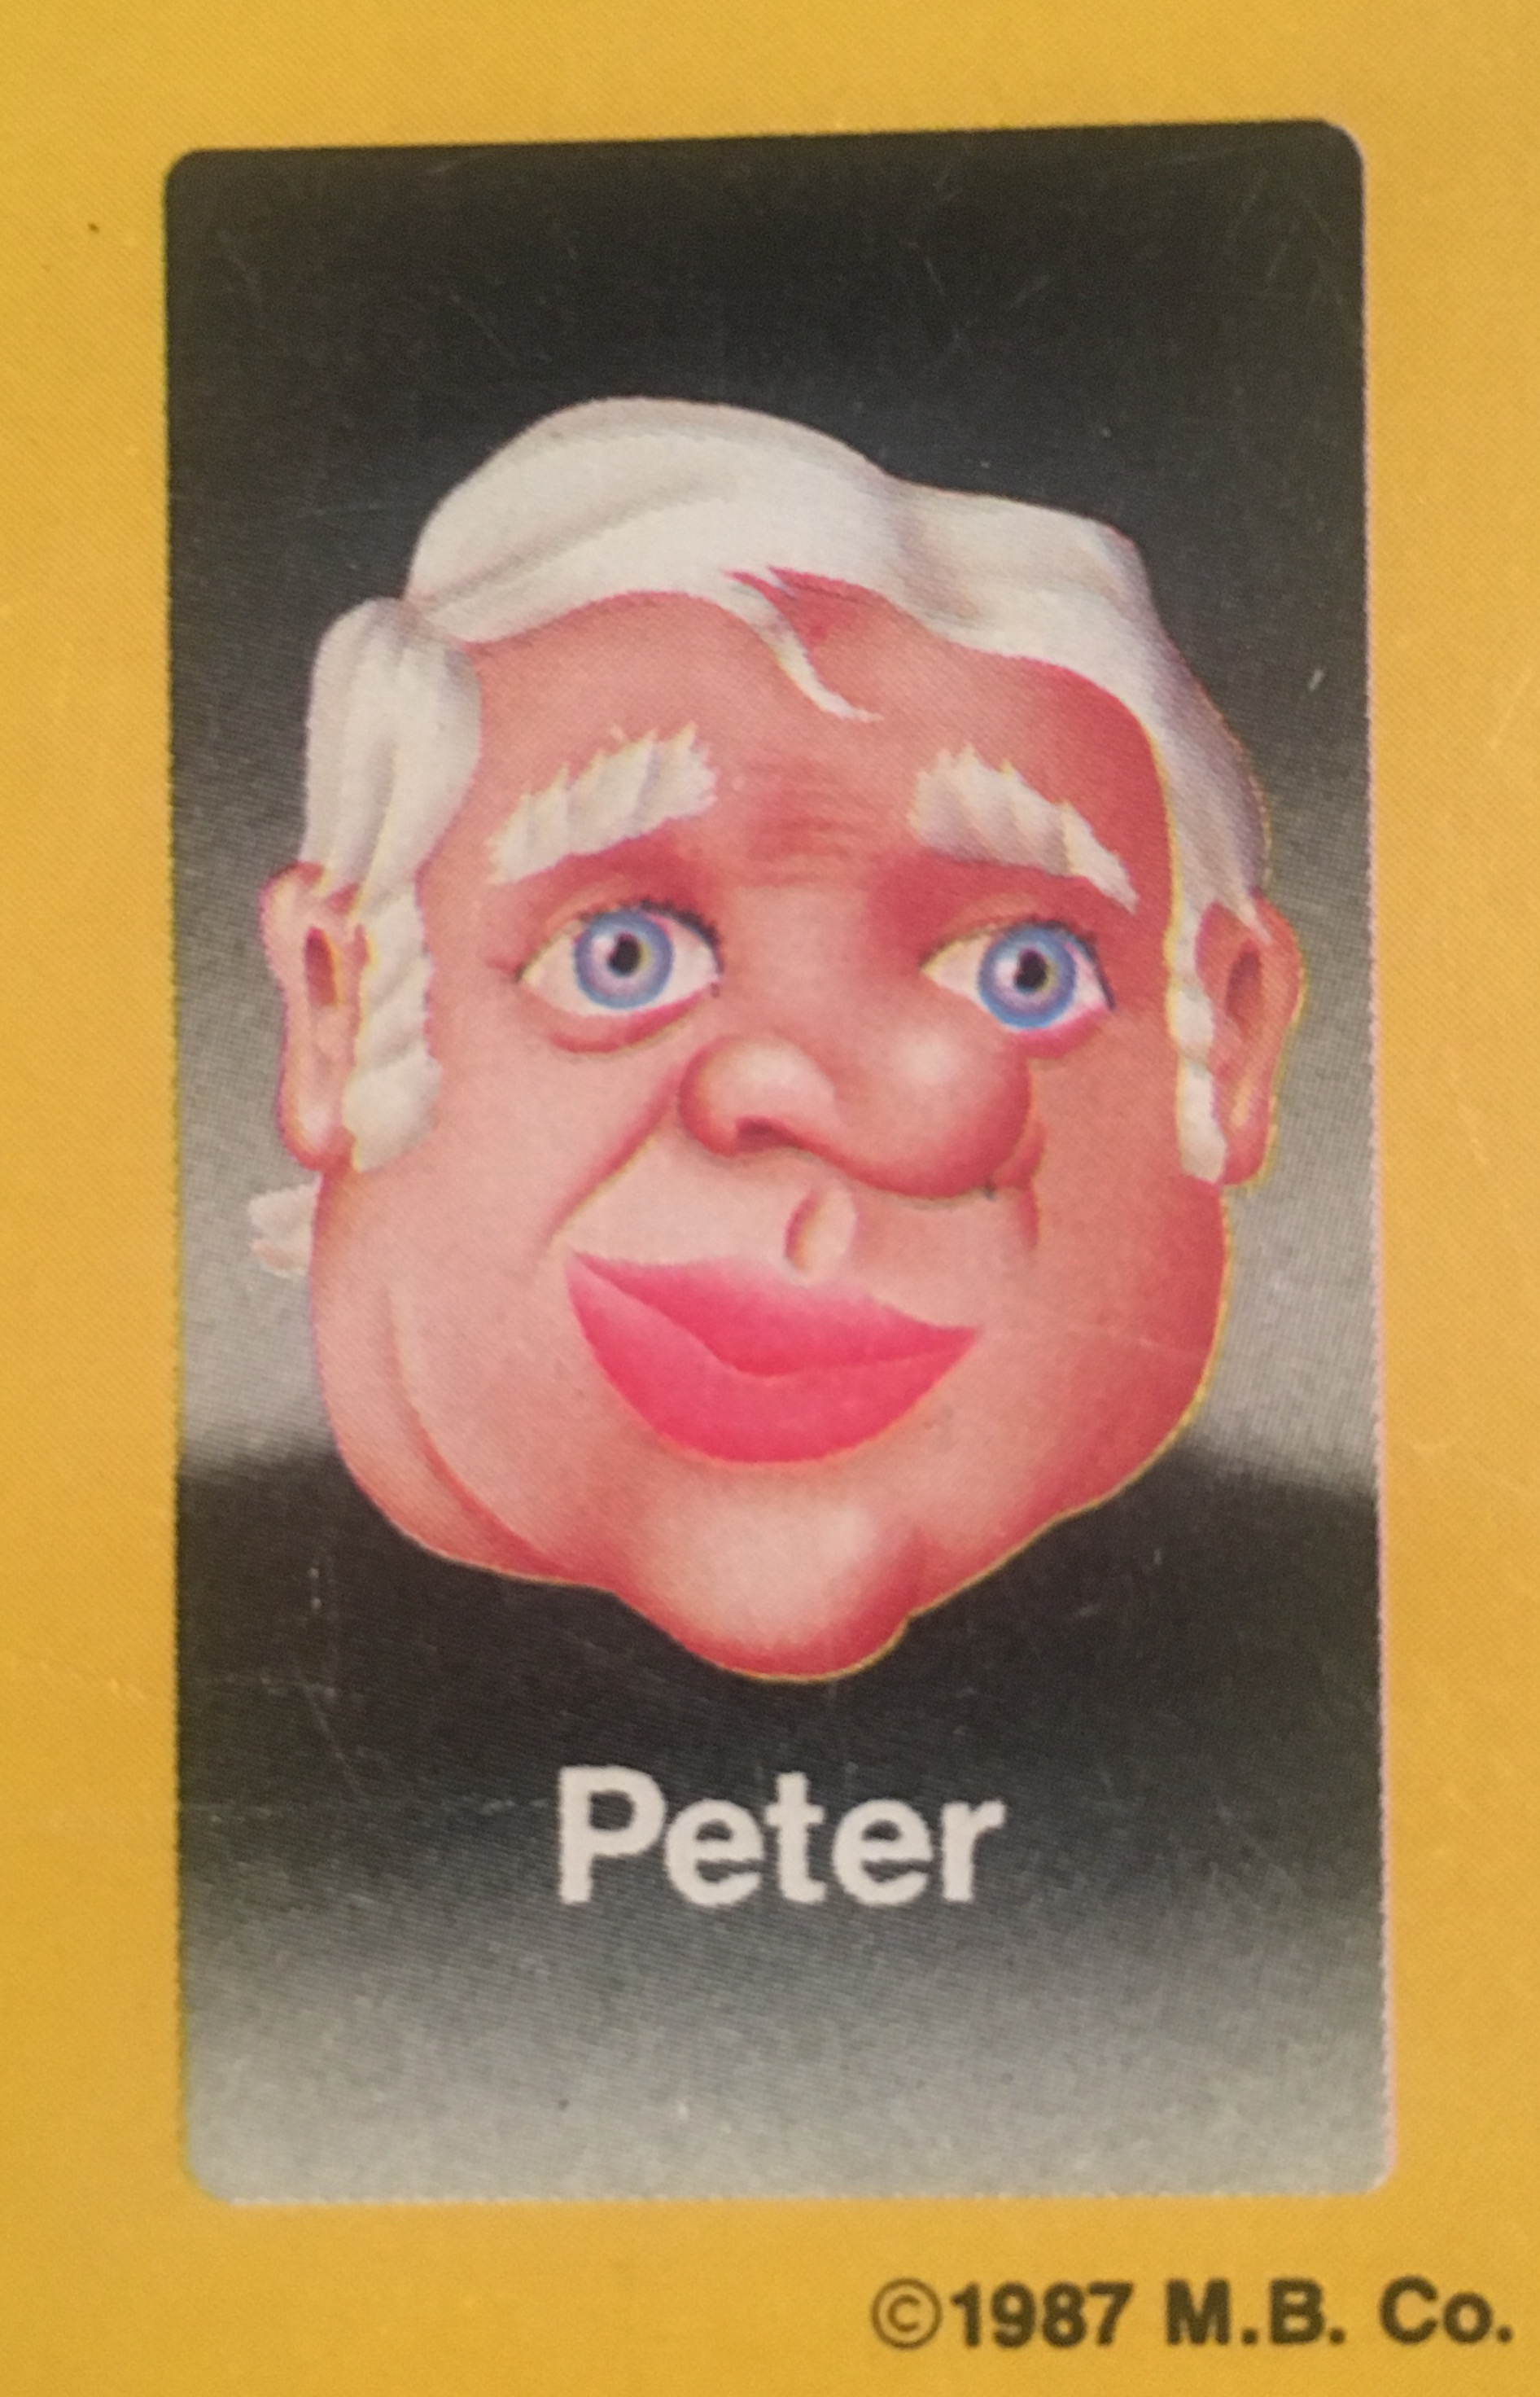 - Peter was a mid-level executive at Milton Bradley when the decision to go forward with the secret Guess Who?® project was made. Senior executives on the board of Milton Bradley thought he had an interesting face, and frankly, they didn't like Peter very much. He was told of his new role within the company, as a face card for the game, and was relieved of all previous responsibilities. In retrospect, it was a savvy move by the board, sacking an unpleasant executive while avoiding a costly buy-out package. And he does have an interesting face.